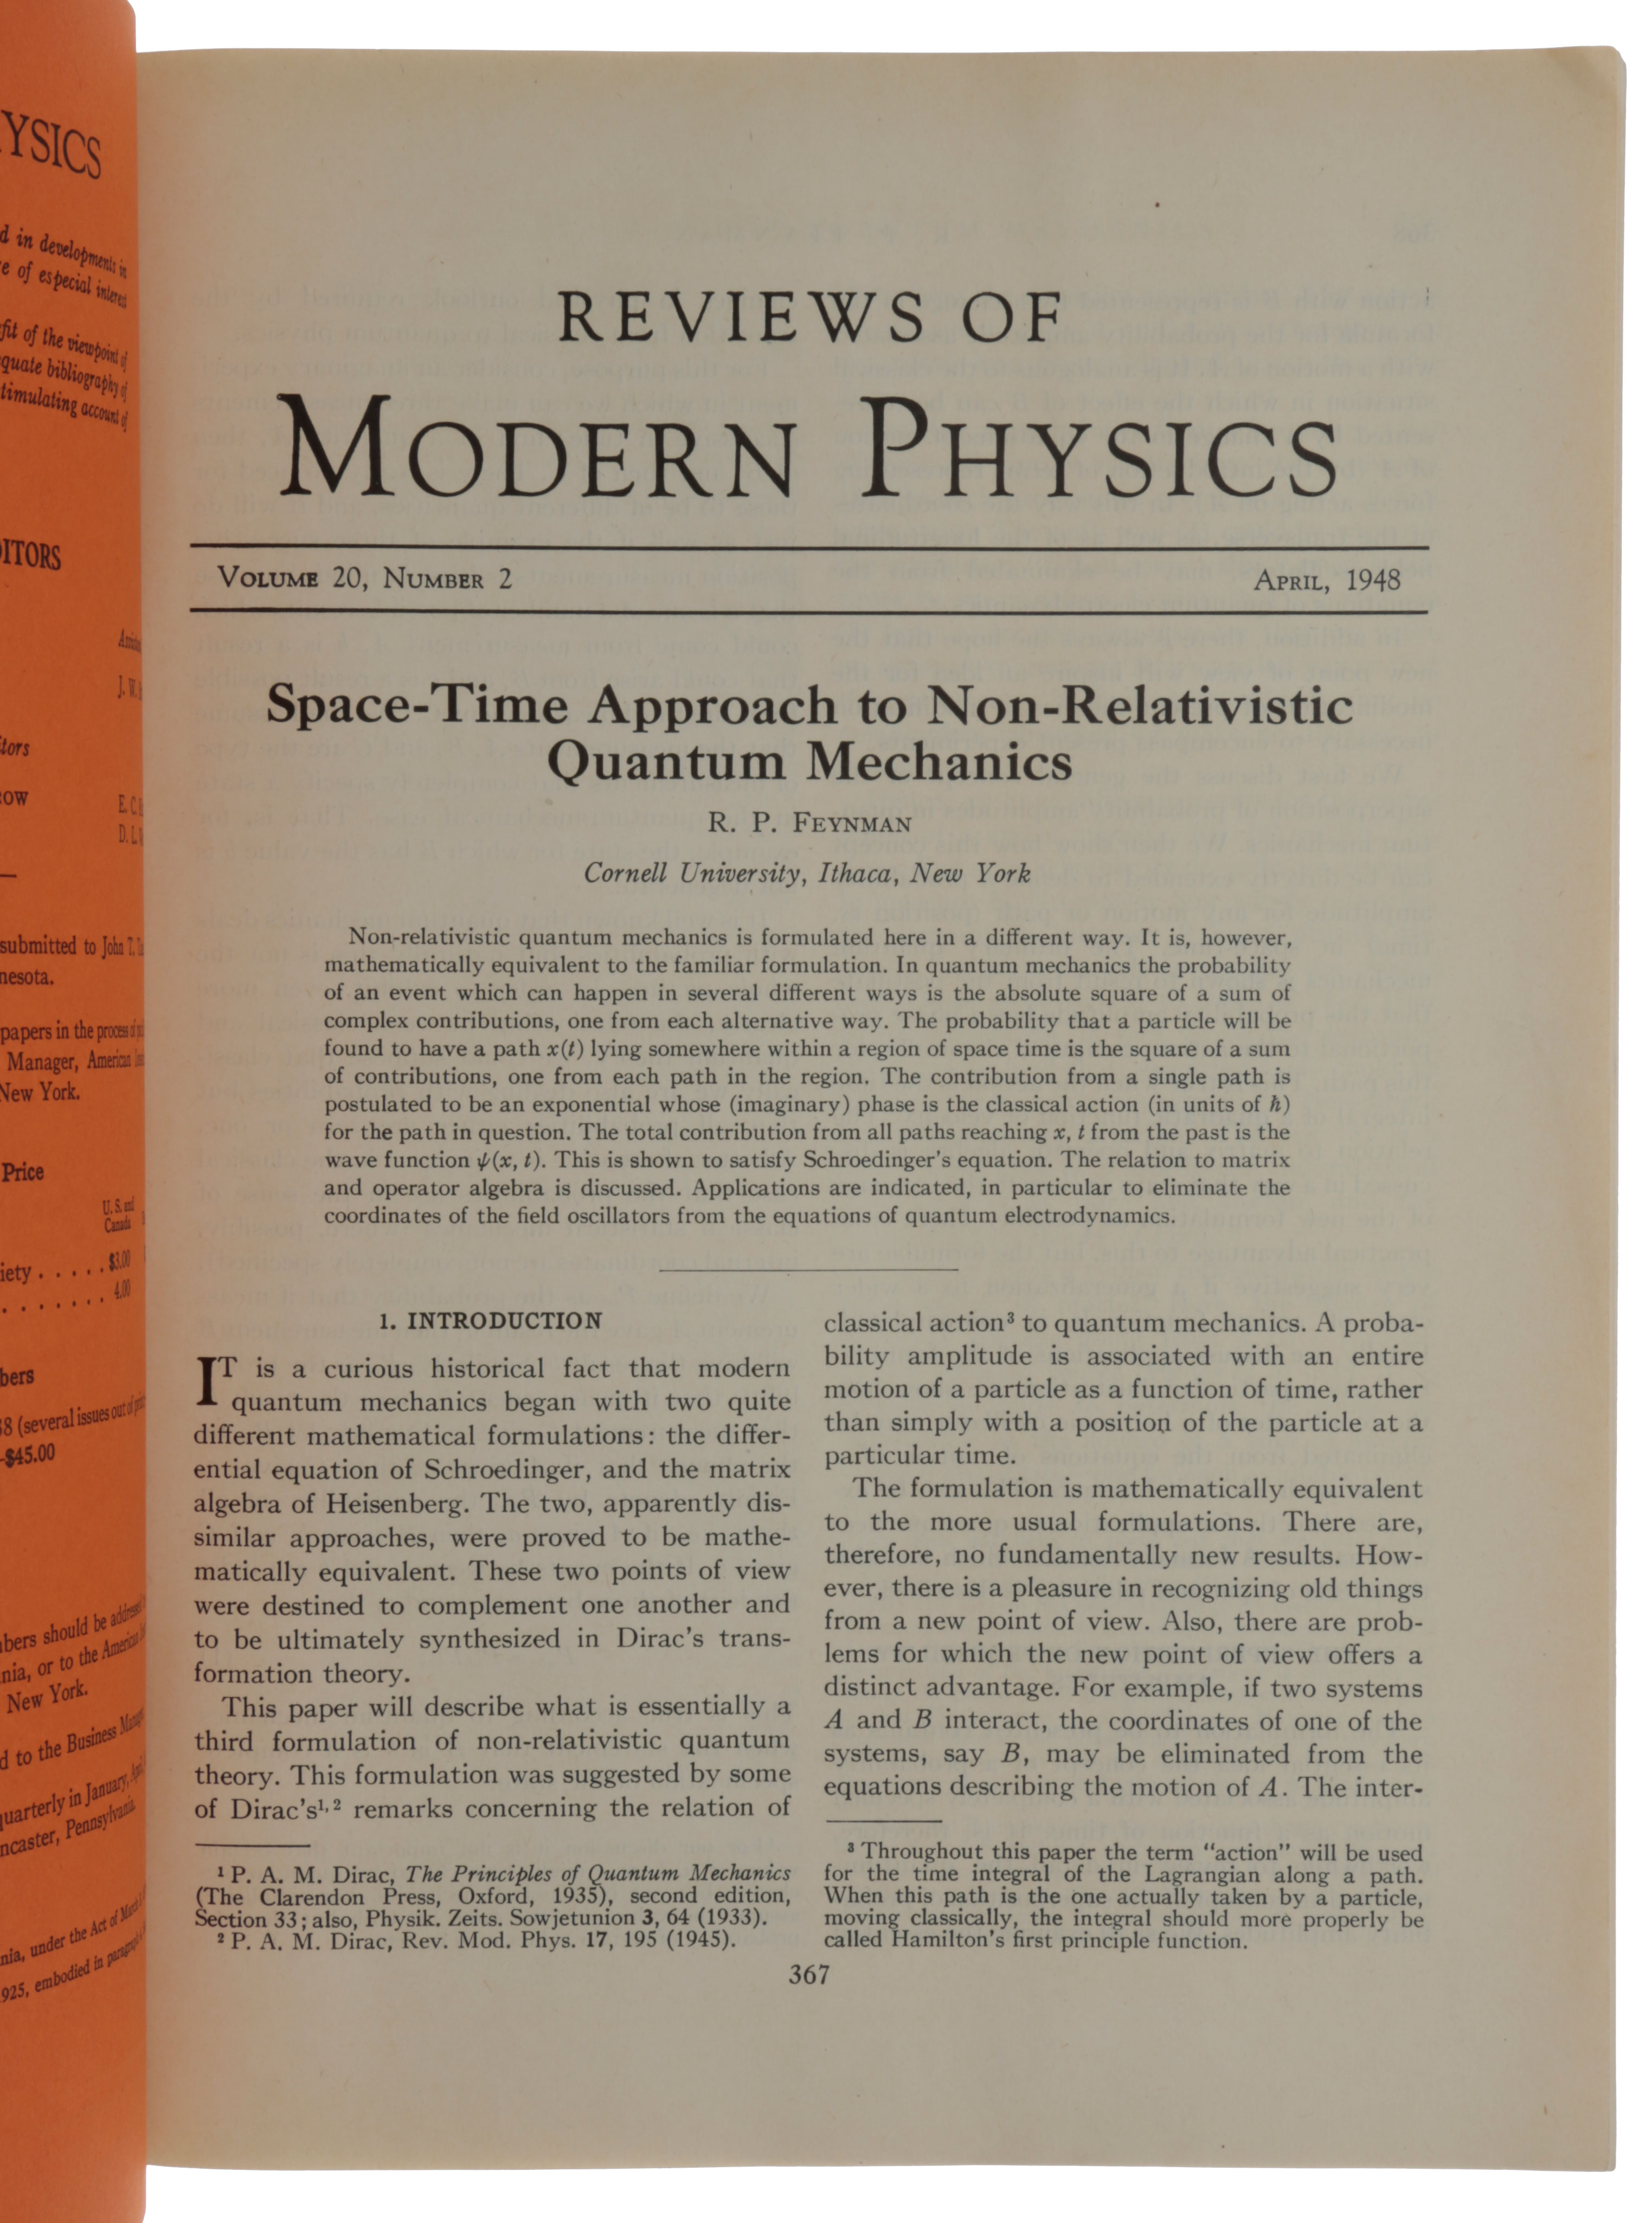 'Space-Time Approach to Non-Relativistic Quantum Mechanics,' pp. 367-387 in: Reviews of Modern Physics, Vol. 20, no. 2, April, 1948. Richard P. FEYNMAN.